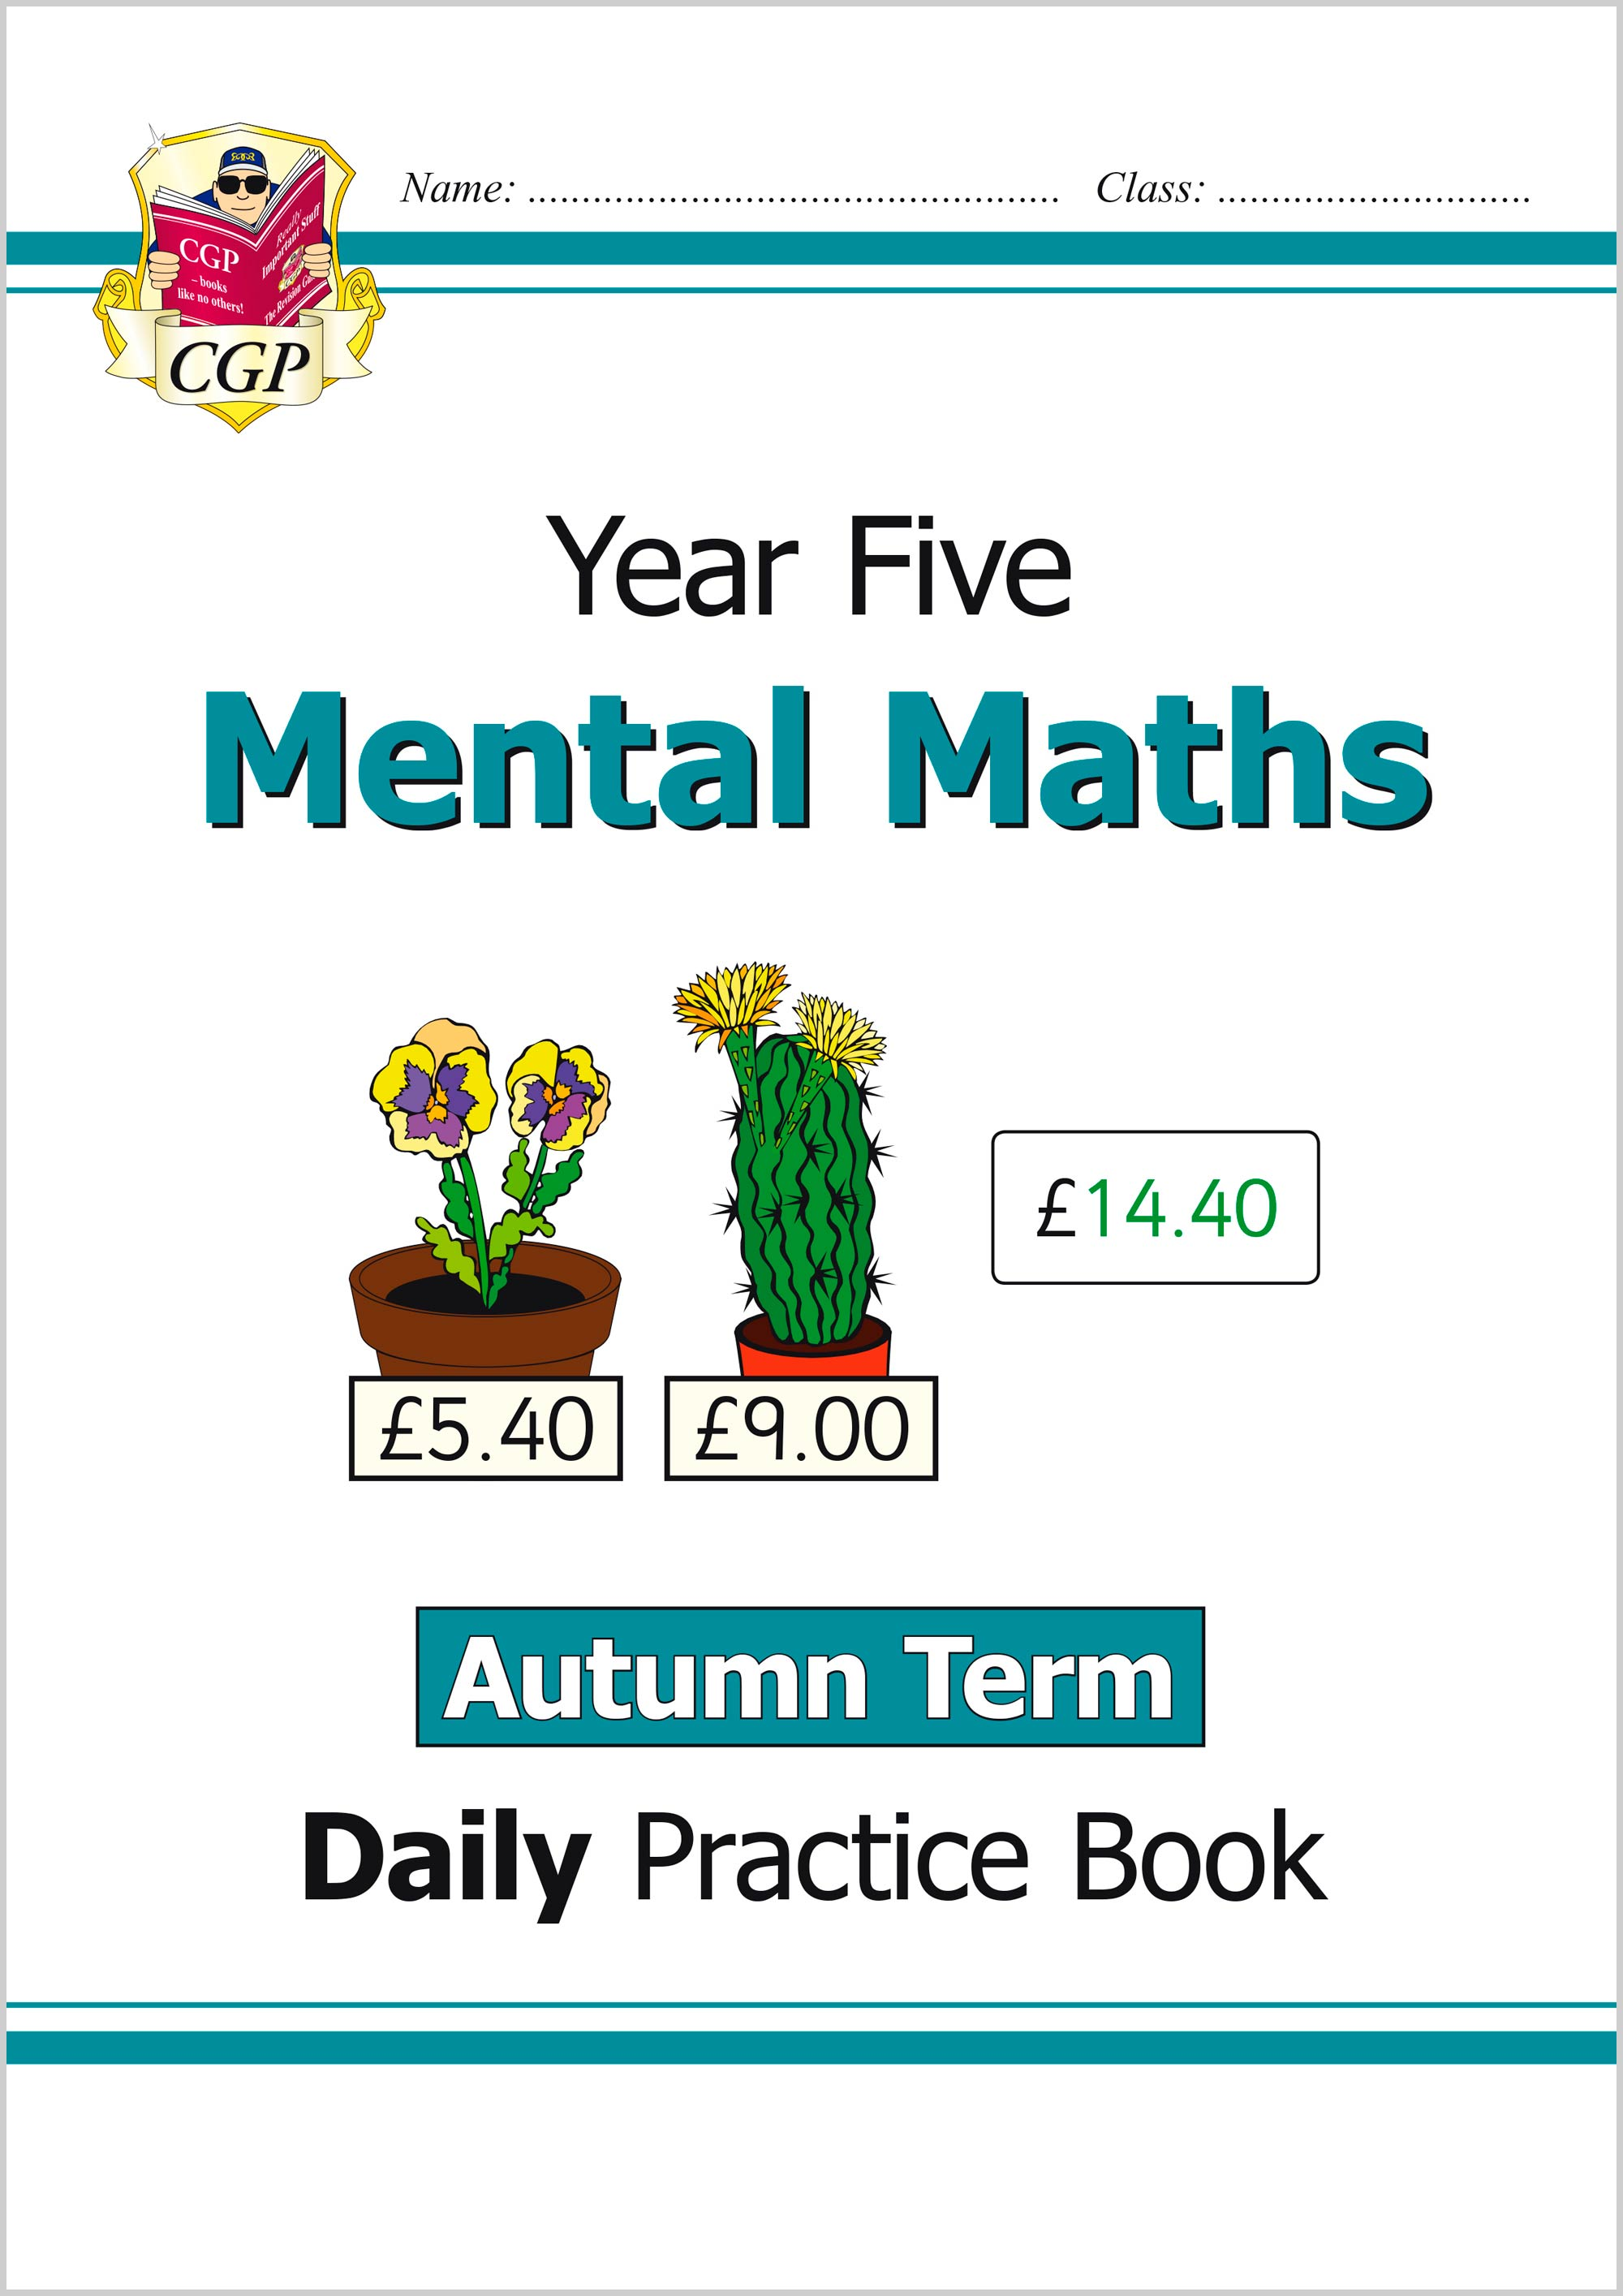 M5MWAU21 - New Mental Maths Daily Practice Book: Year 5 - Autumn Term